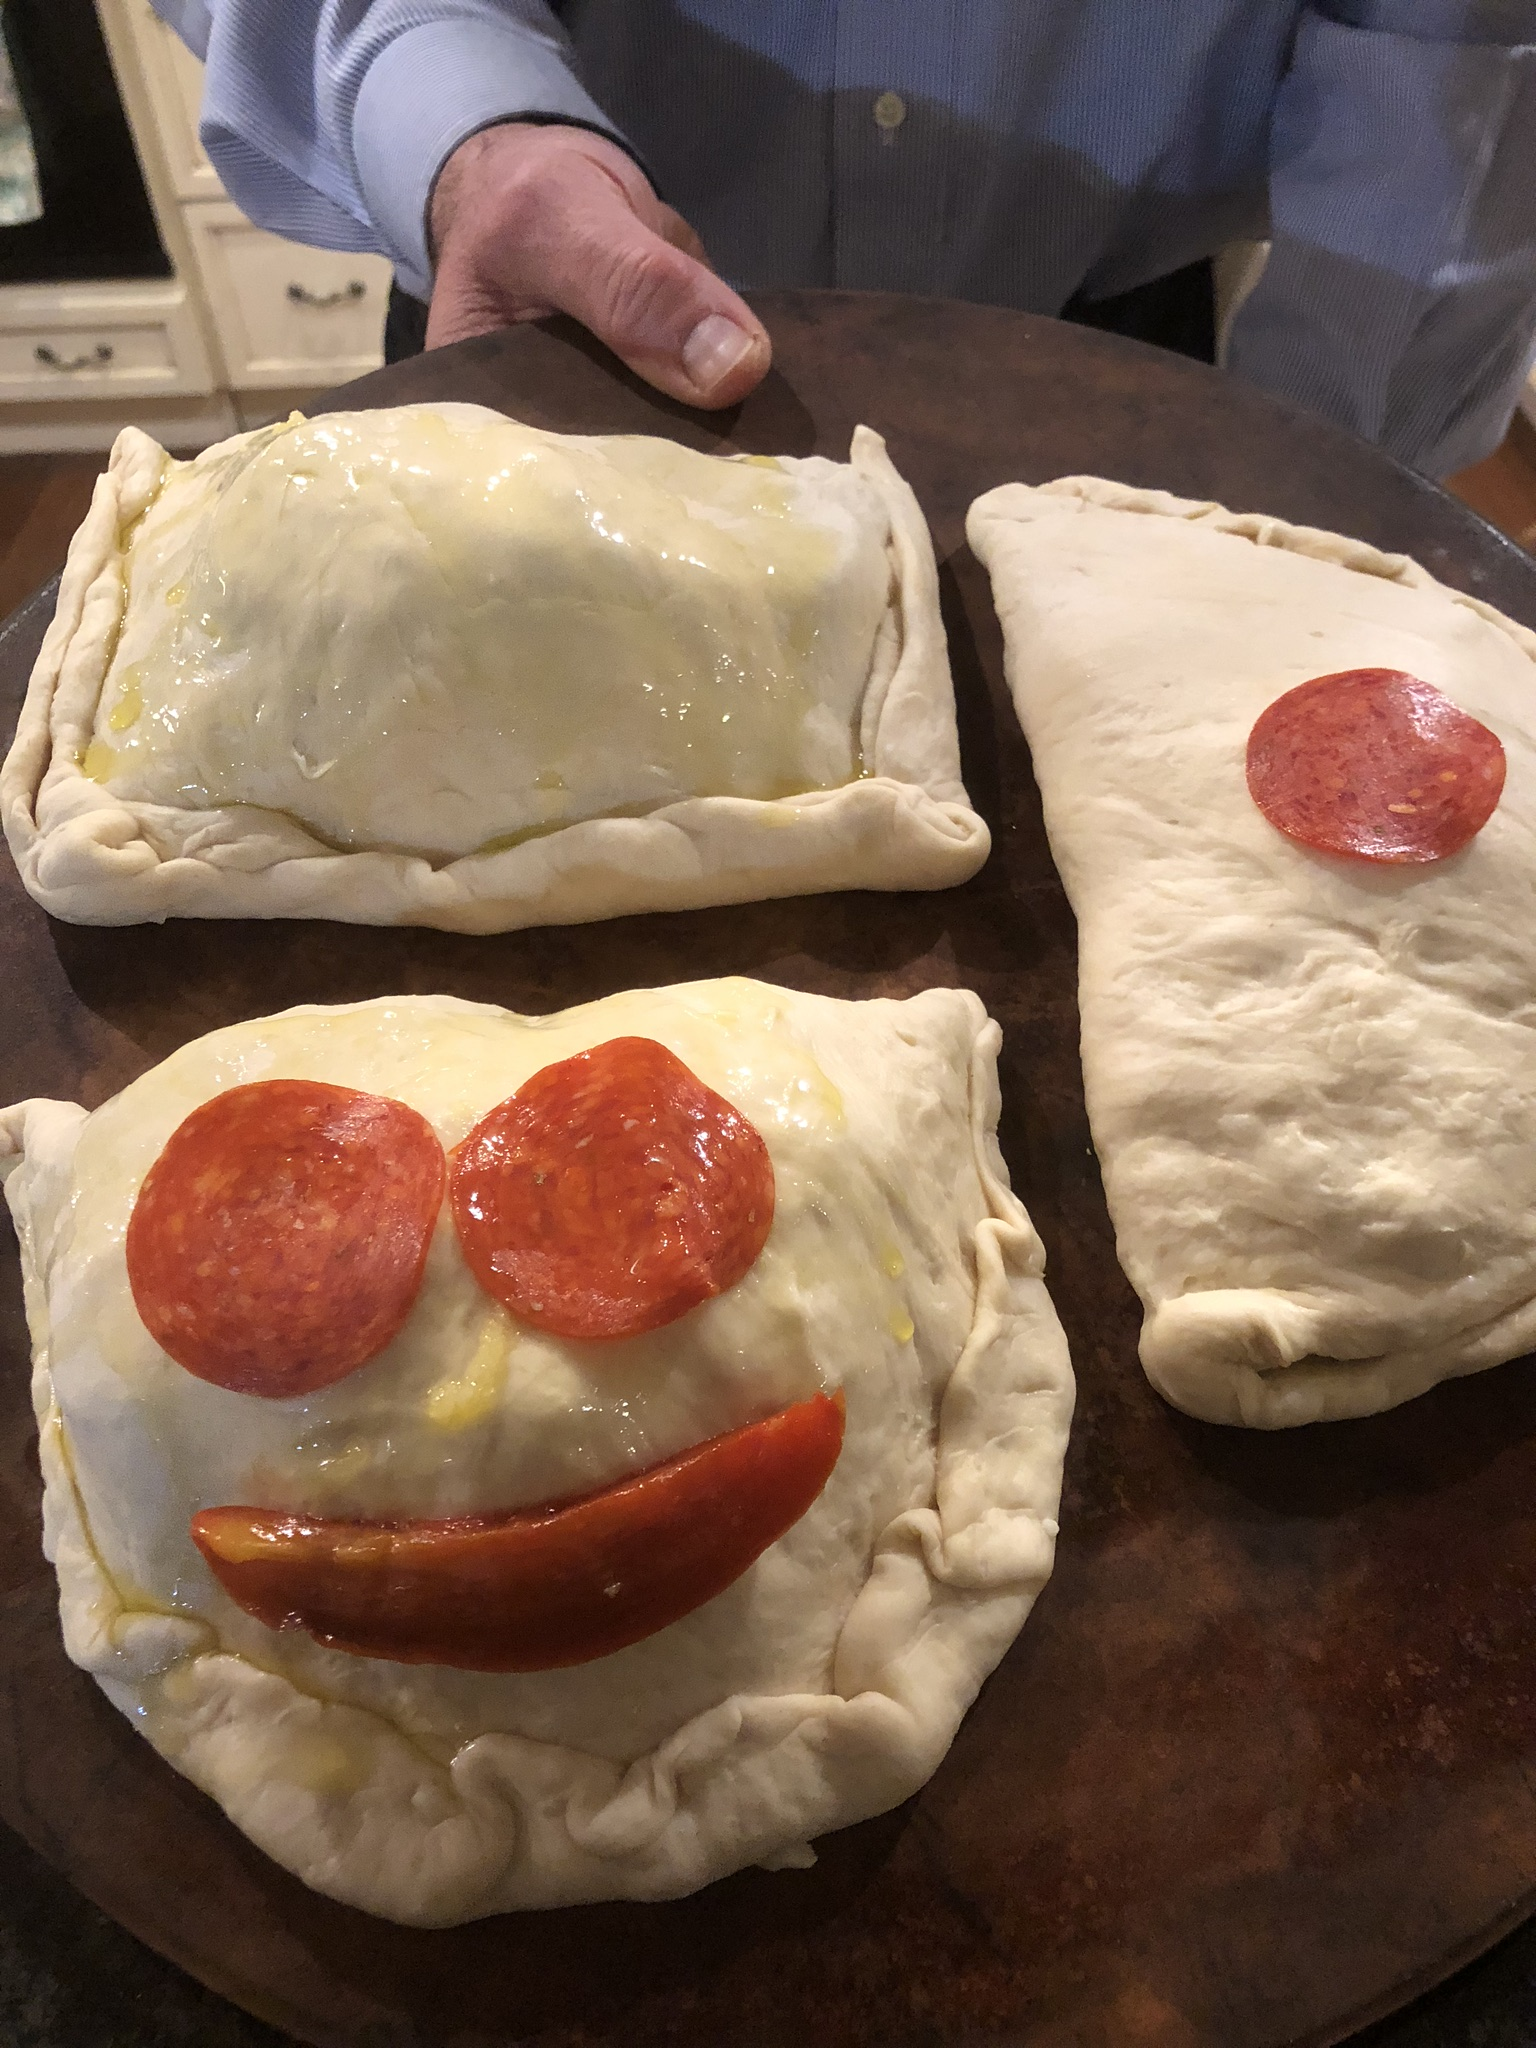 Homemade calzone stuffed with Mozzarella and other fillings